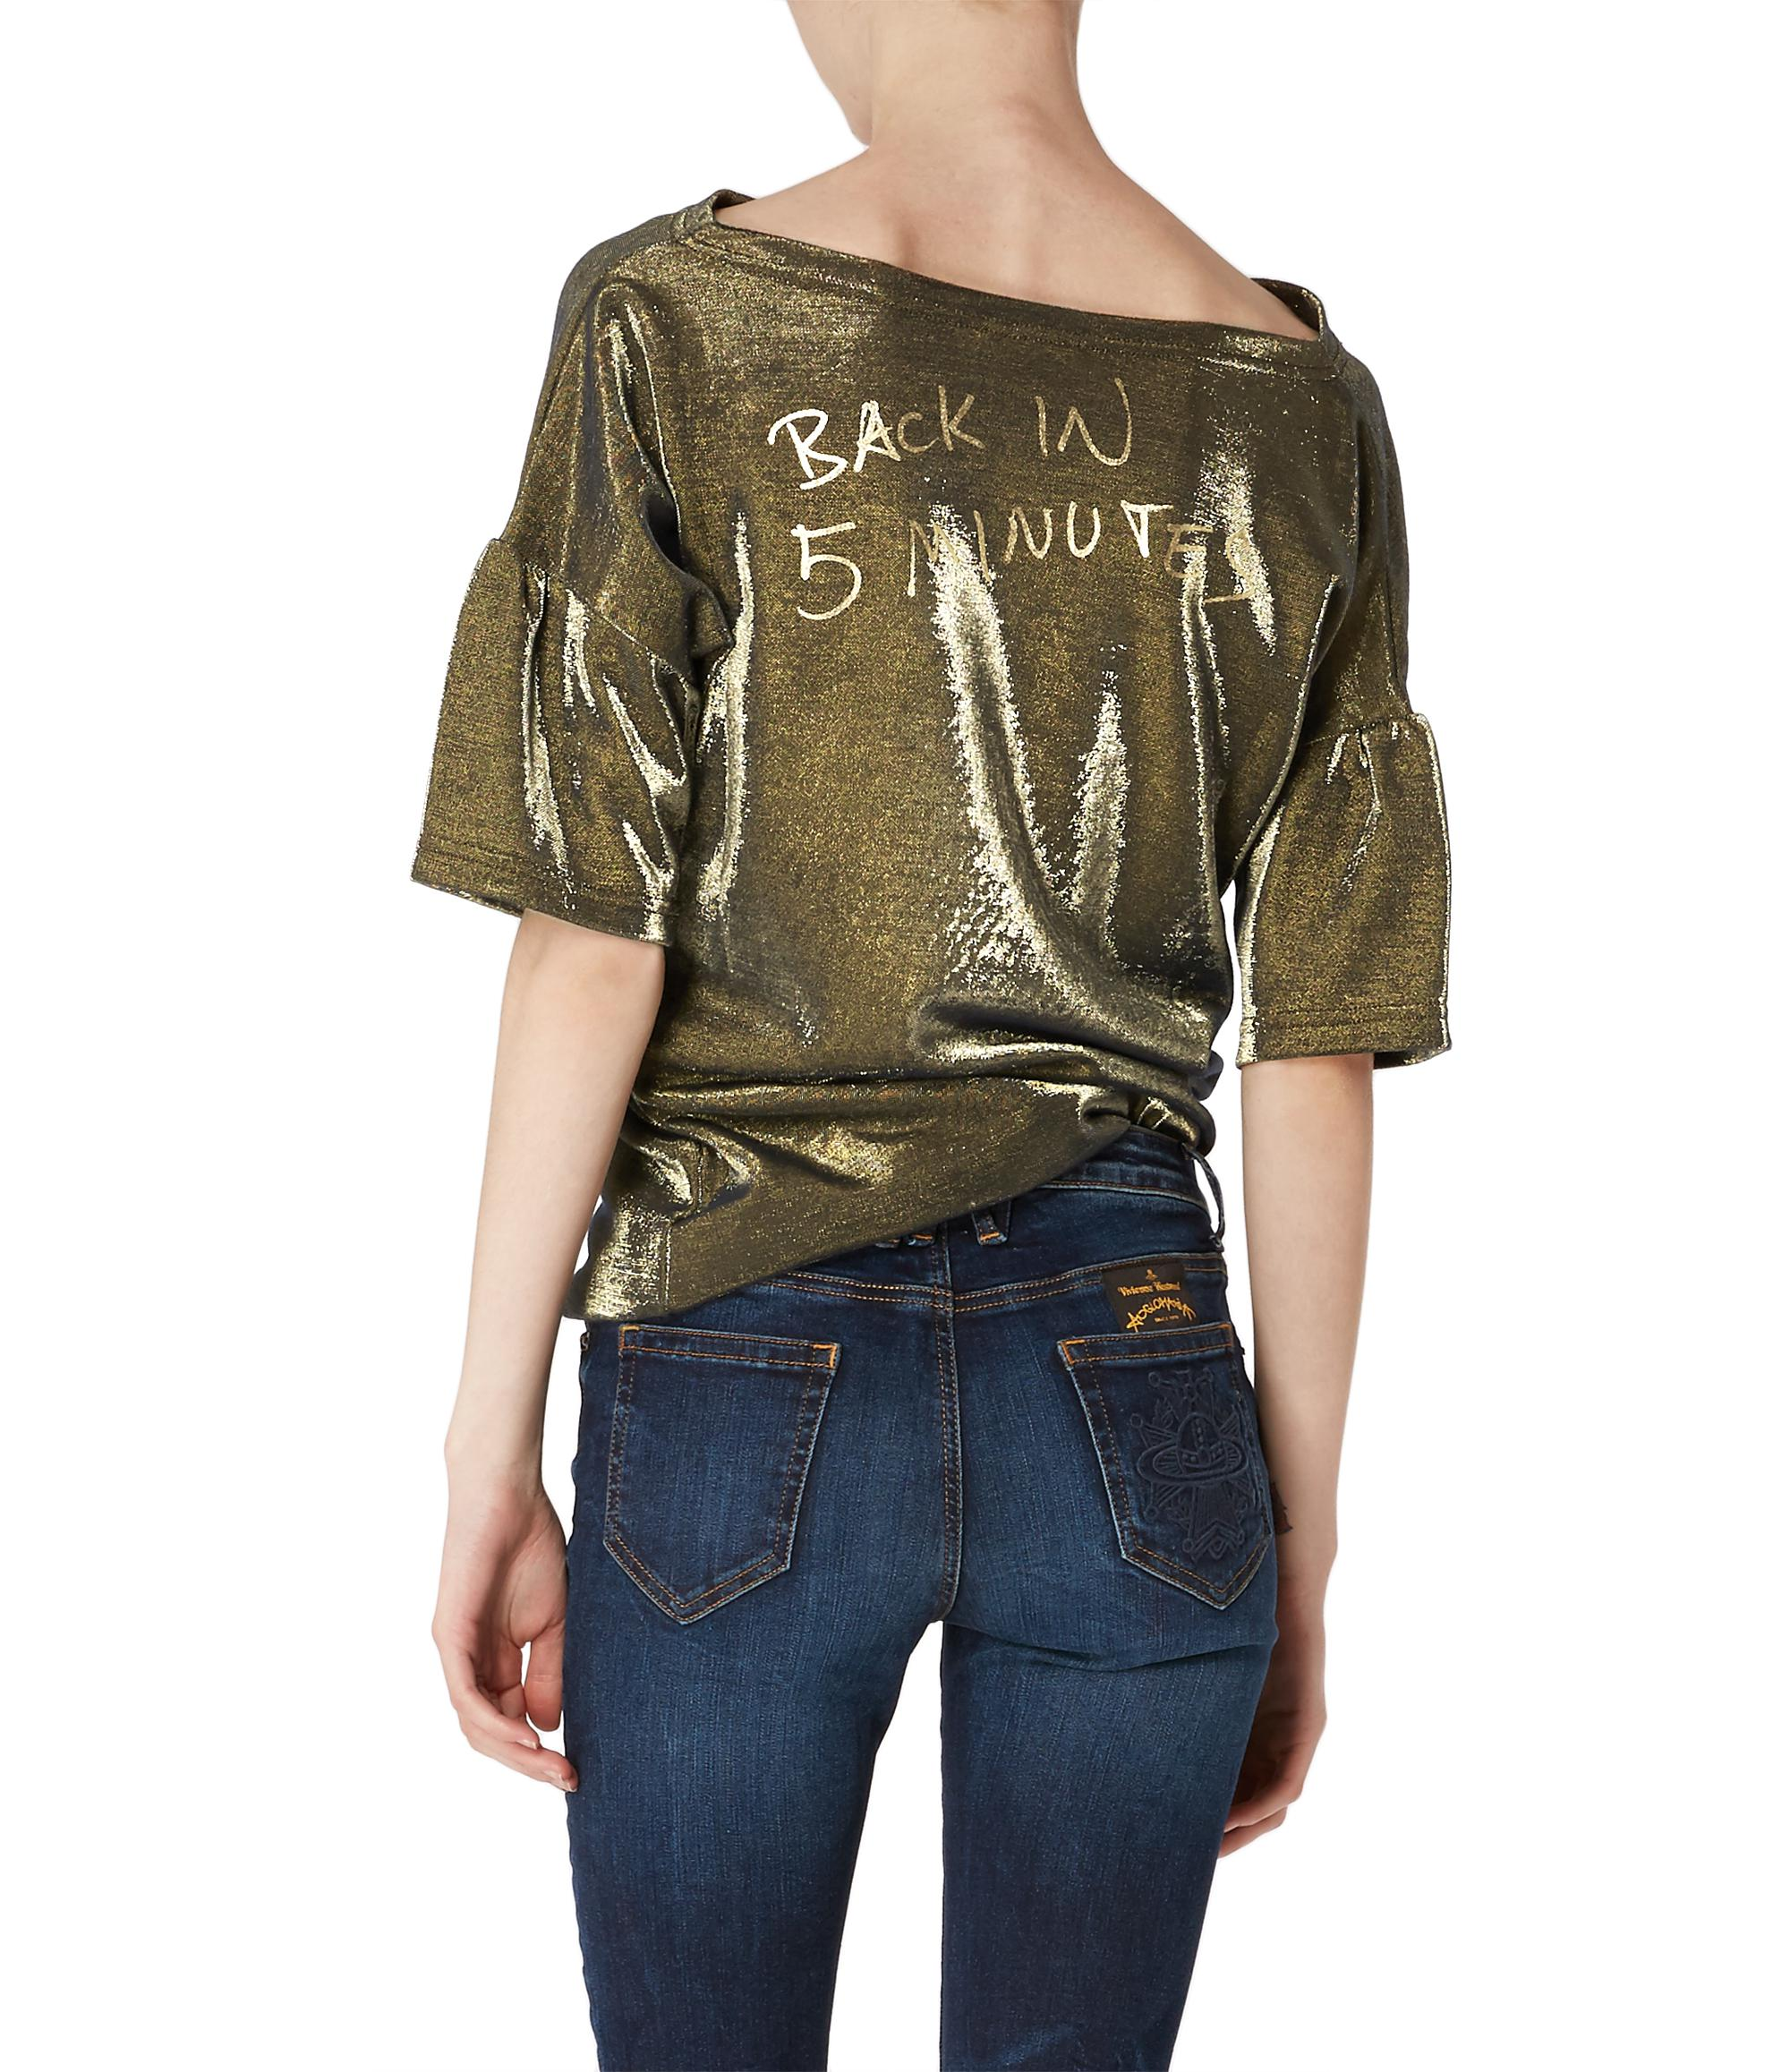 Lyst vivienne westwood open 24 hrs top in metallic for 24 hour t shirt printing